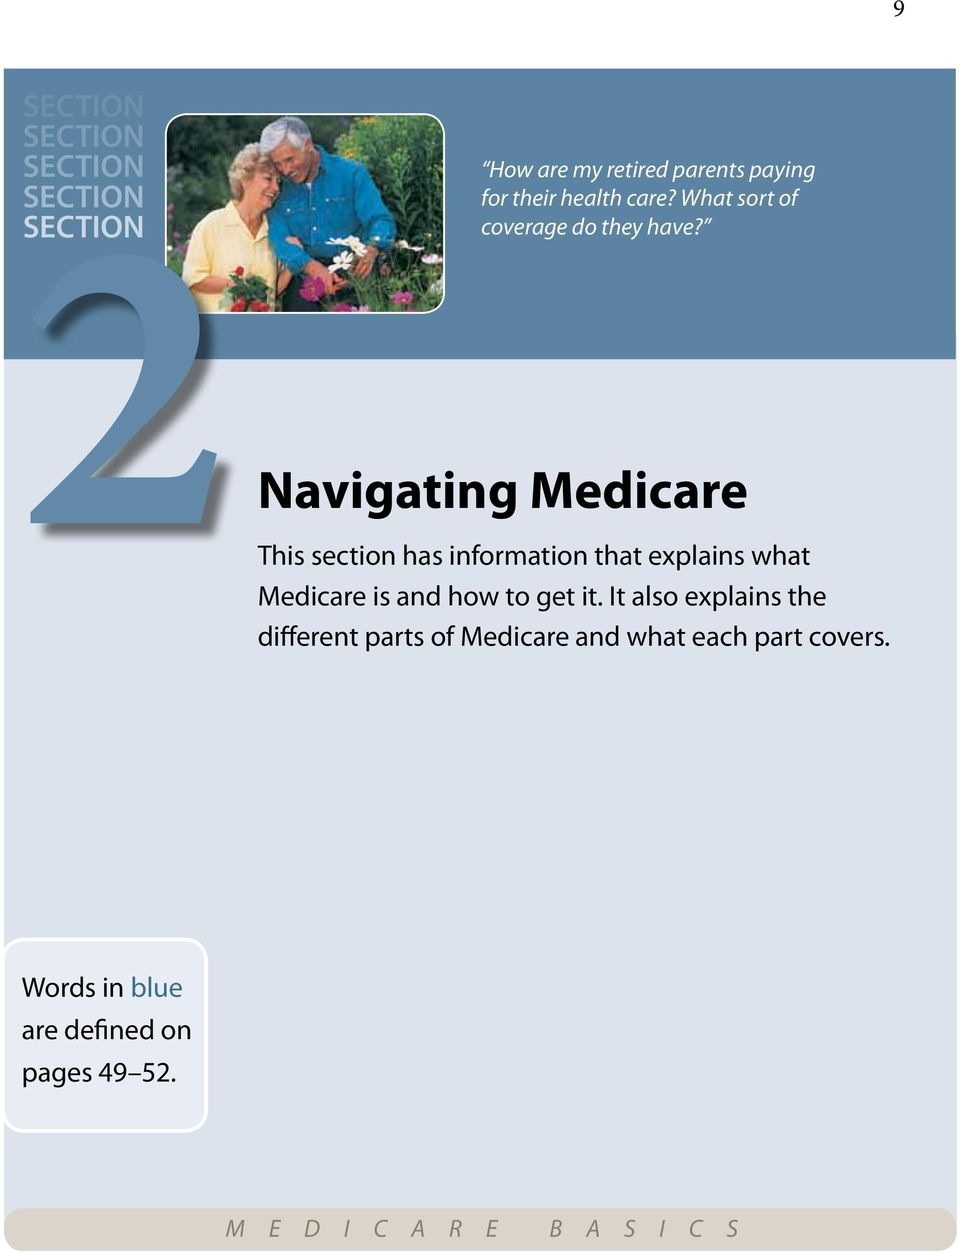 Navigating Medicare This section has information that explains what Medicare is and how to get